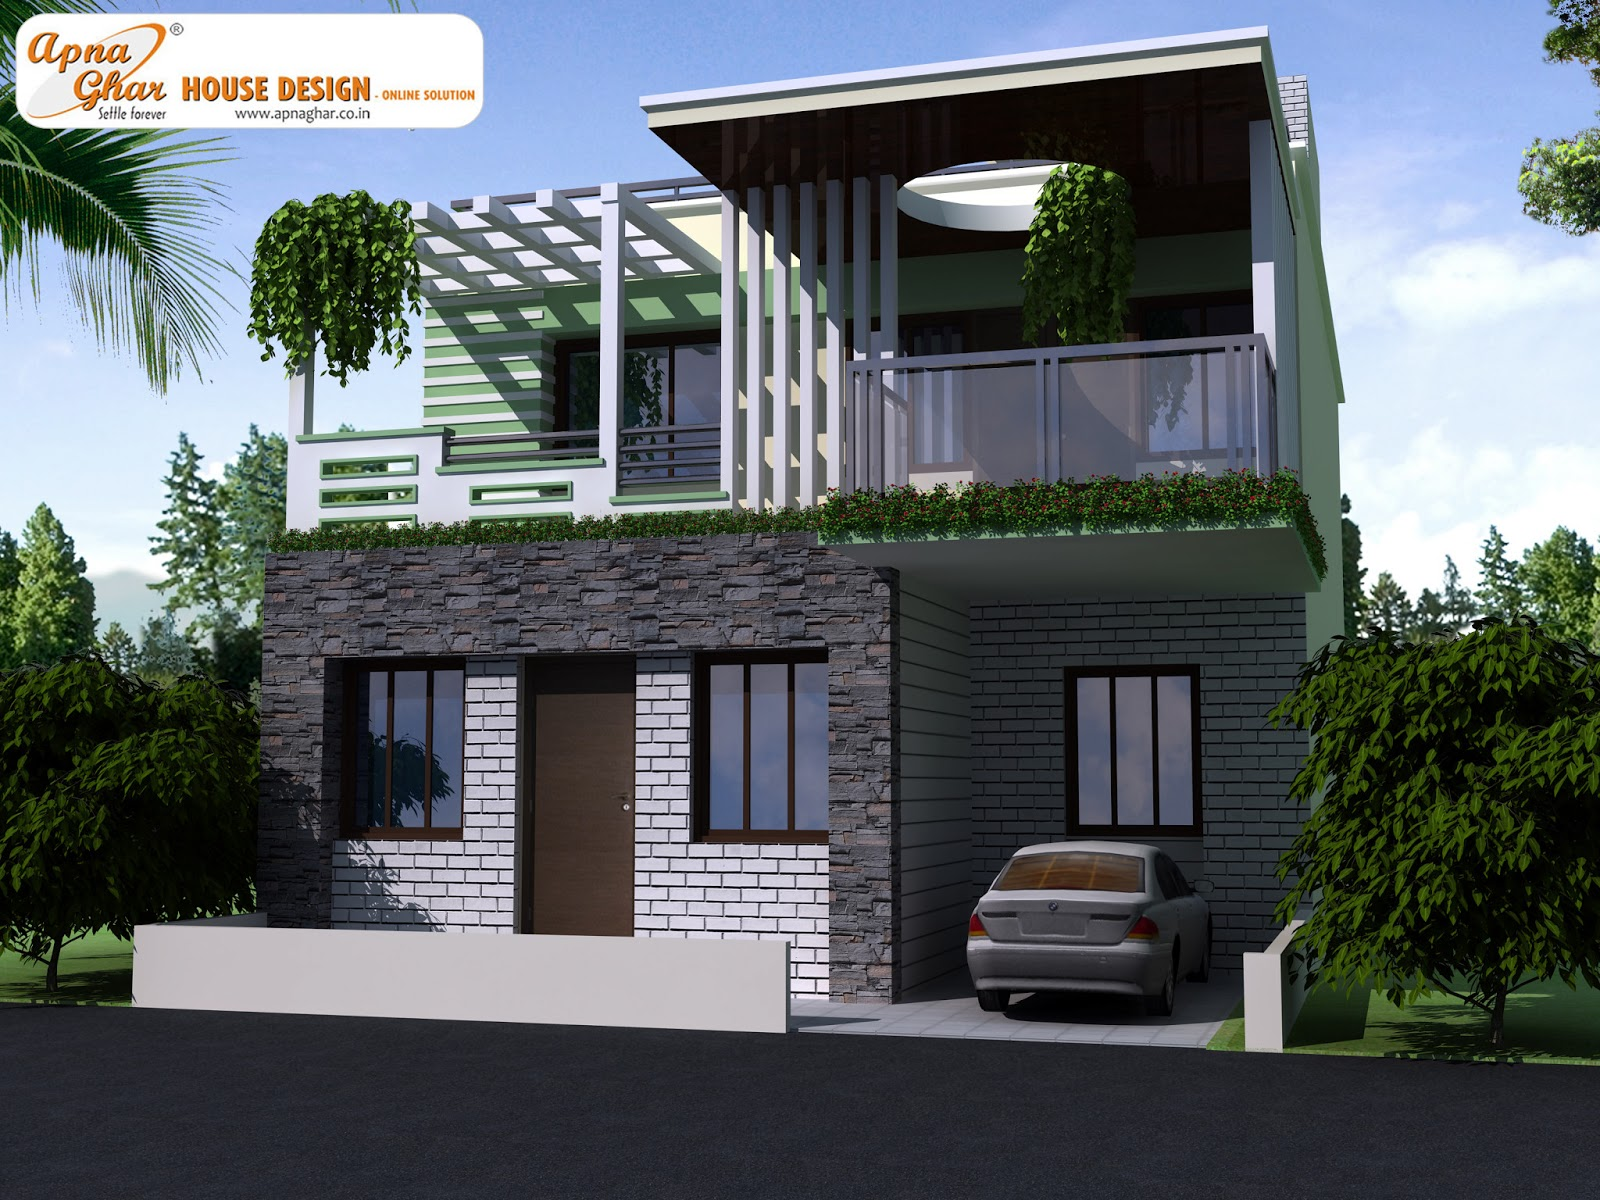 Apnaghar complete architectural solution page 41 for New duplex designs